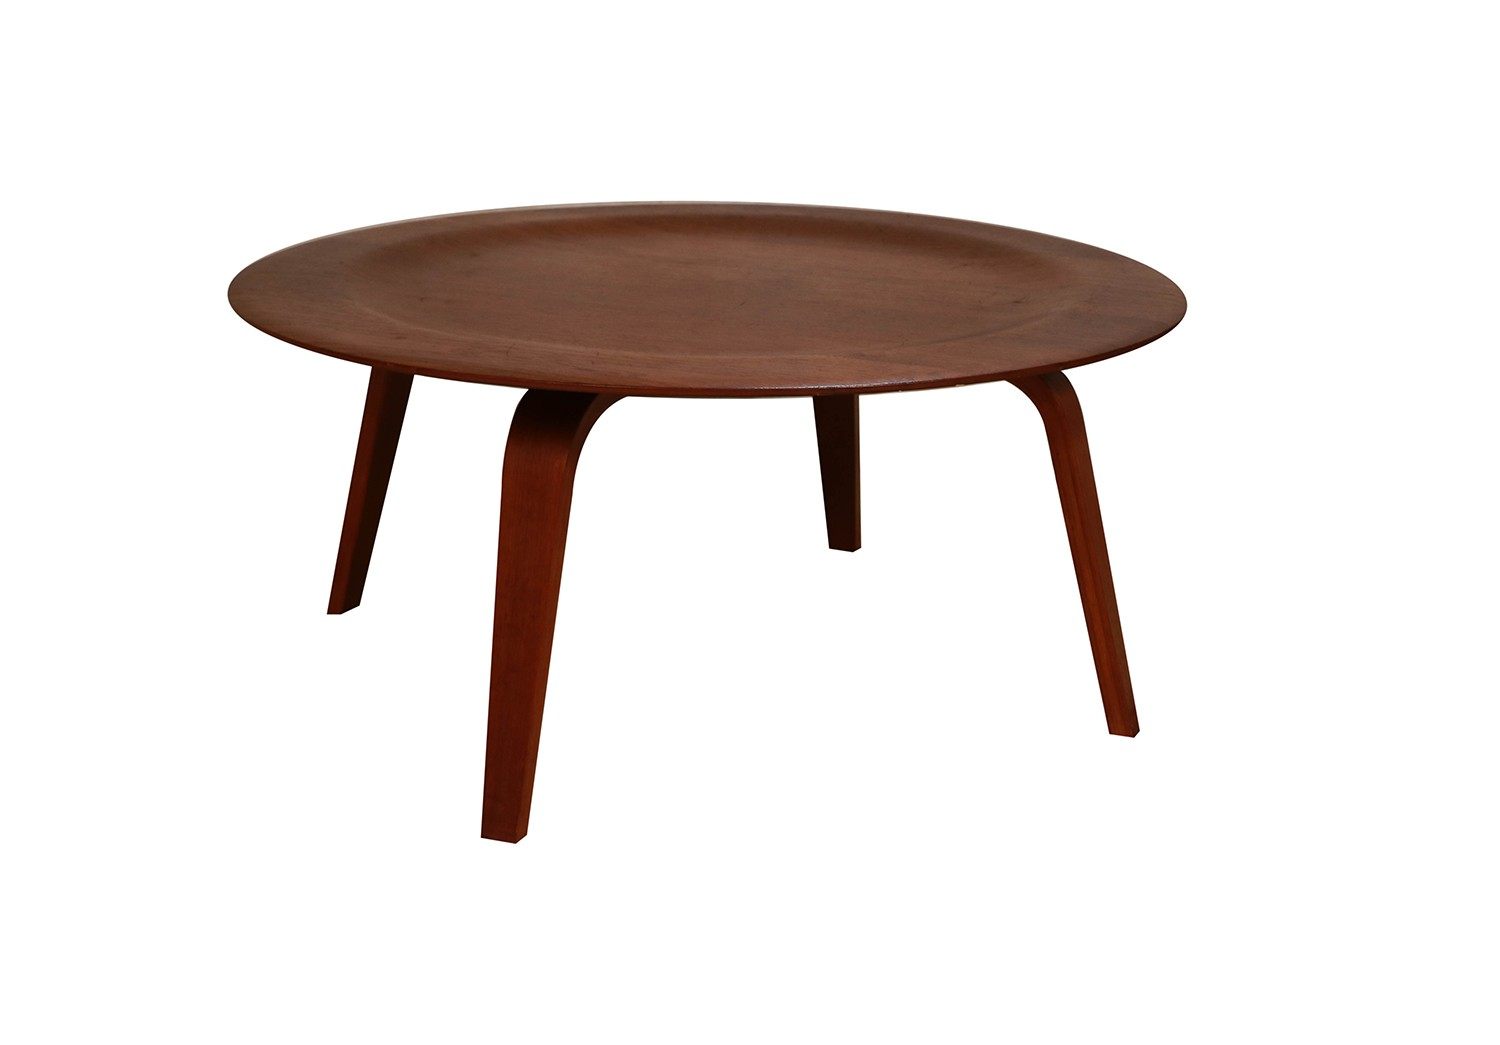 Charles Eames Charles Eames Molded Plywood Ctw Coffee Table For Herman Miller